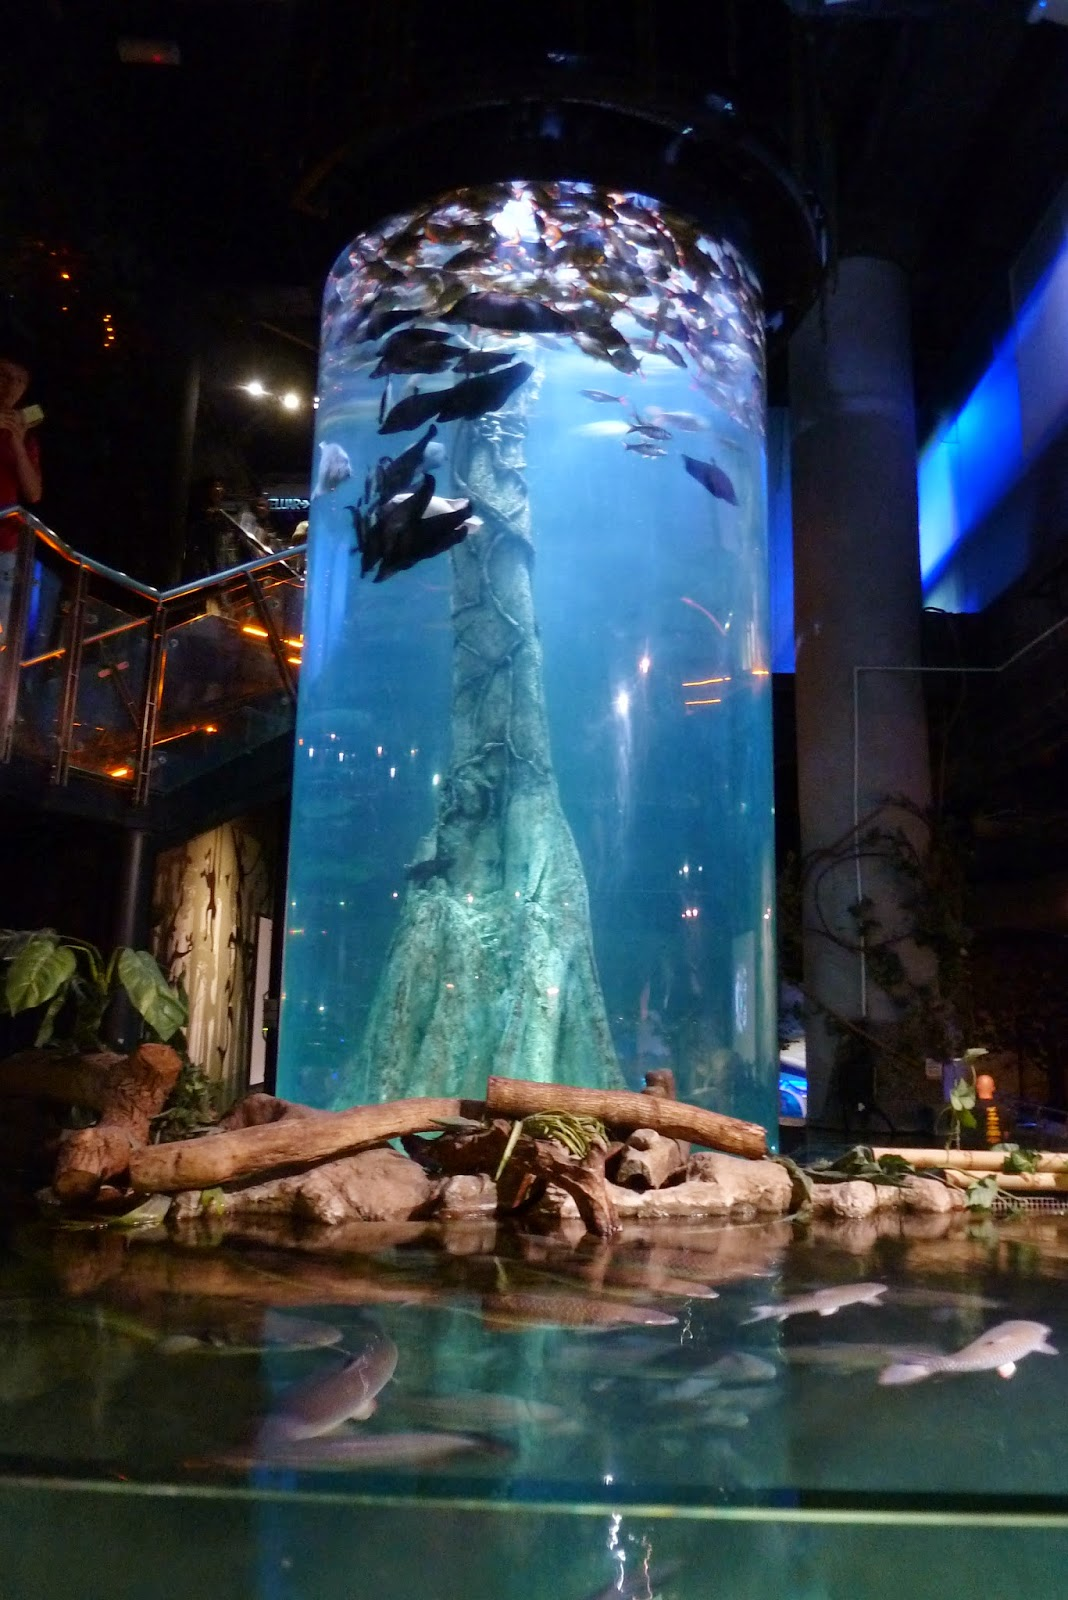 Kee Hua Chee Live Aquaria At Suria Klcc Is One Of The